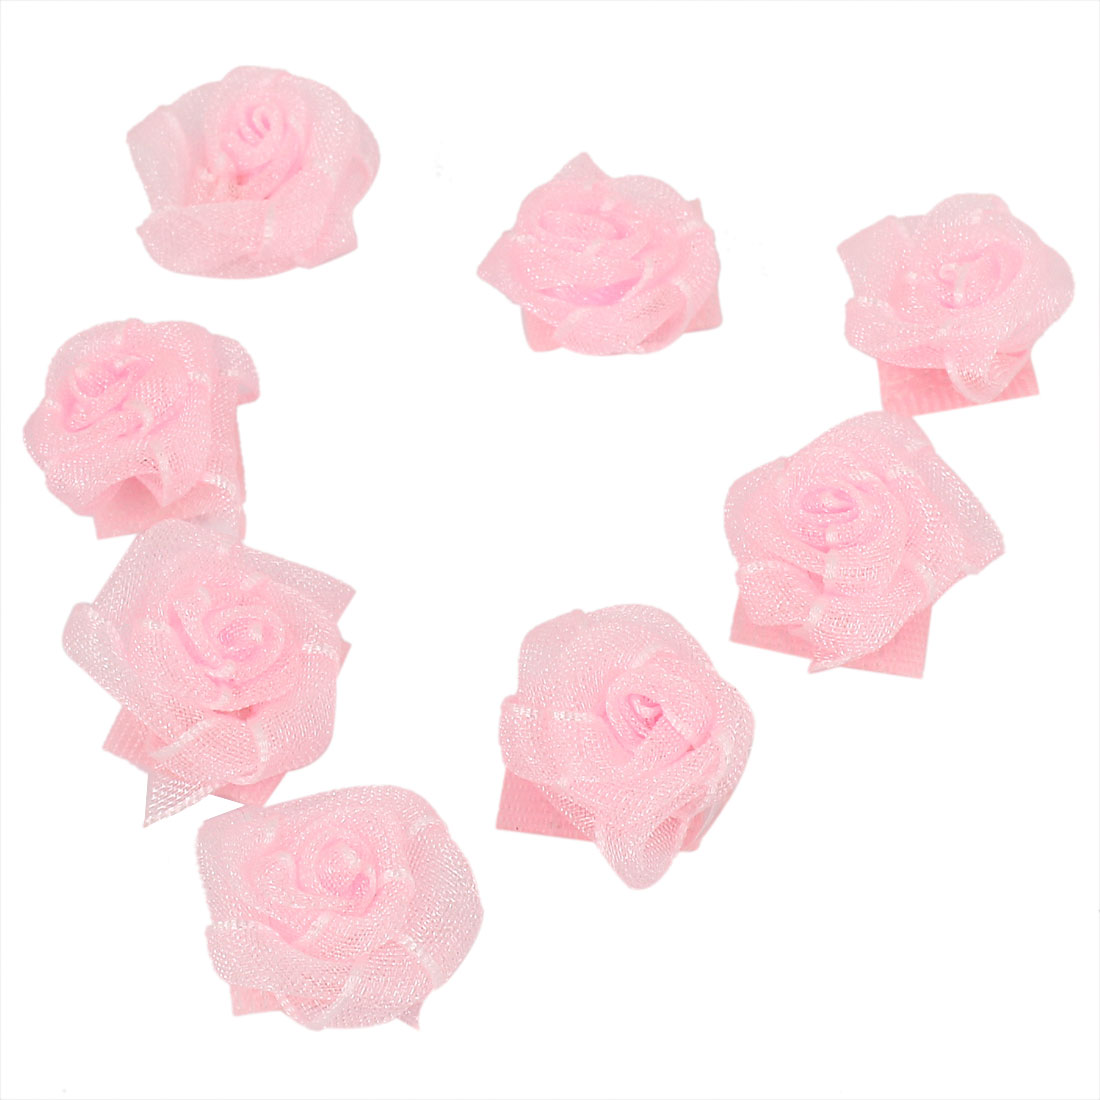 8 Pcs Pink Rose Design Hairstyle Making Hairdressing Magic Sheets for Girls